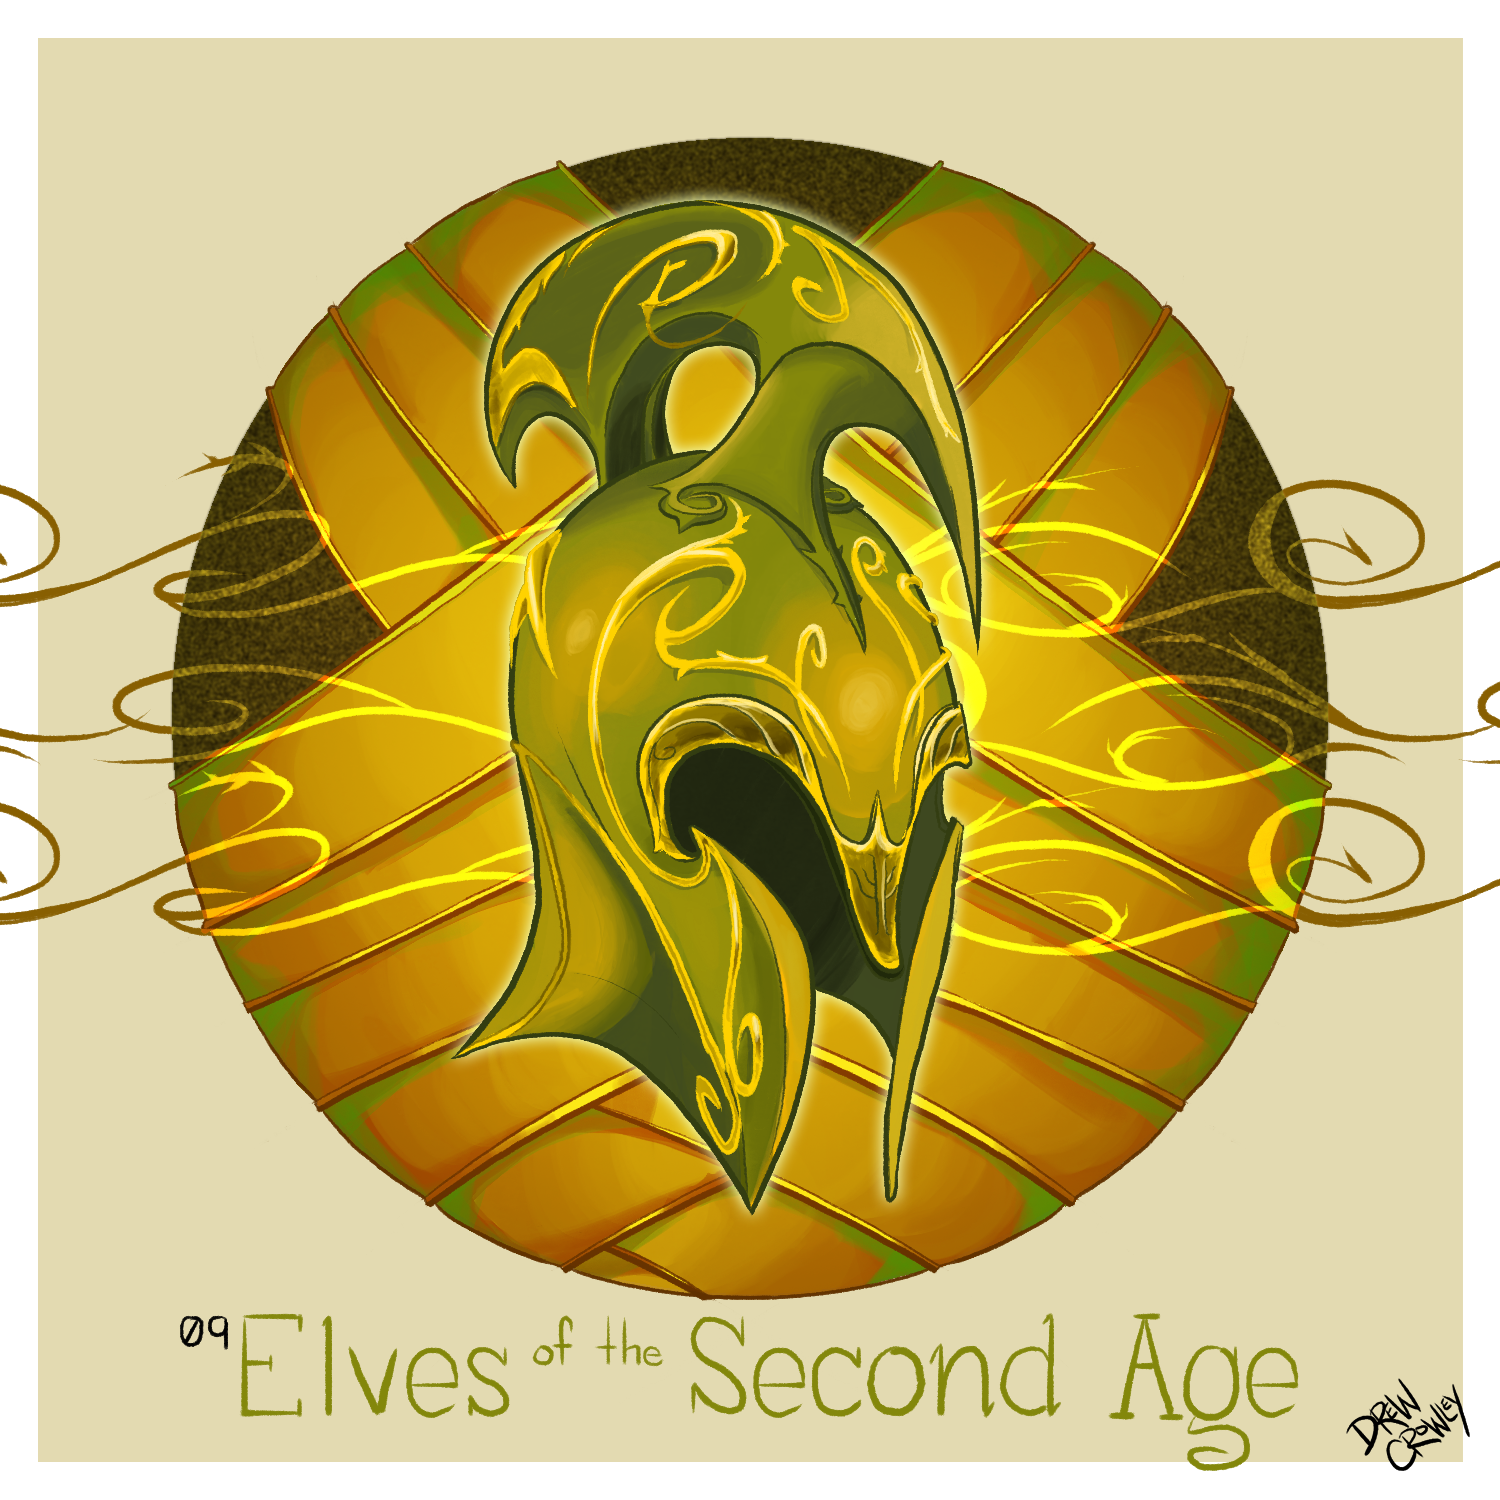 09 Elves of the Second Age